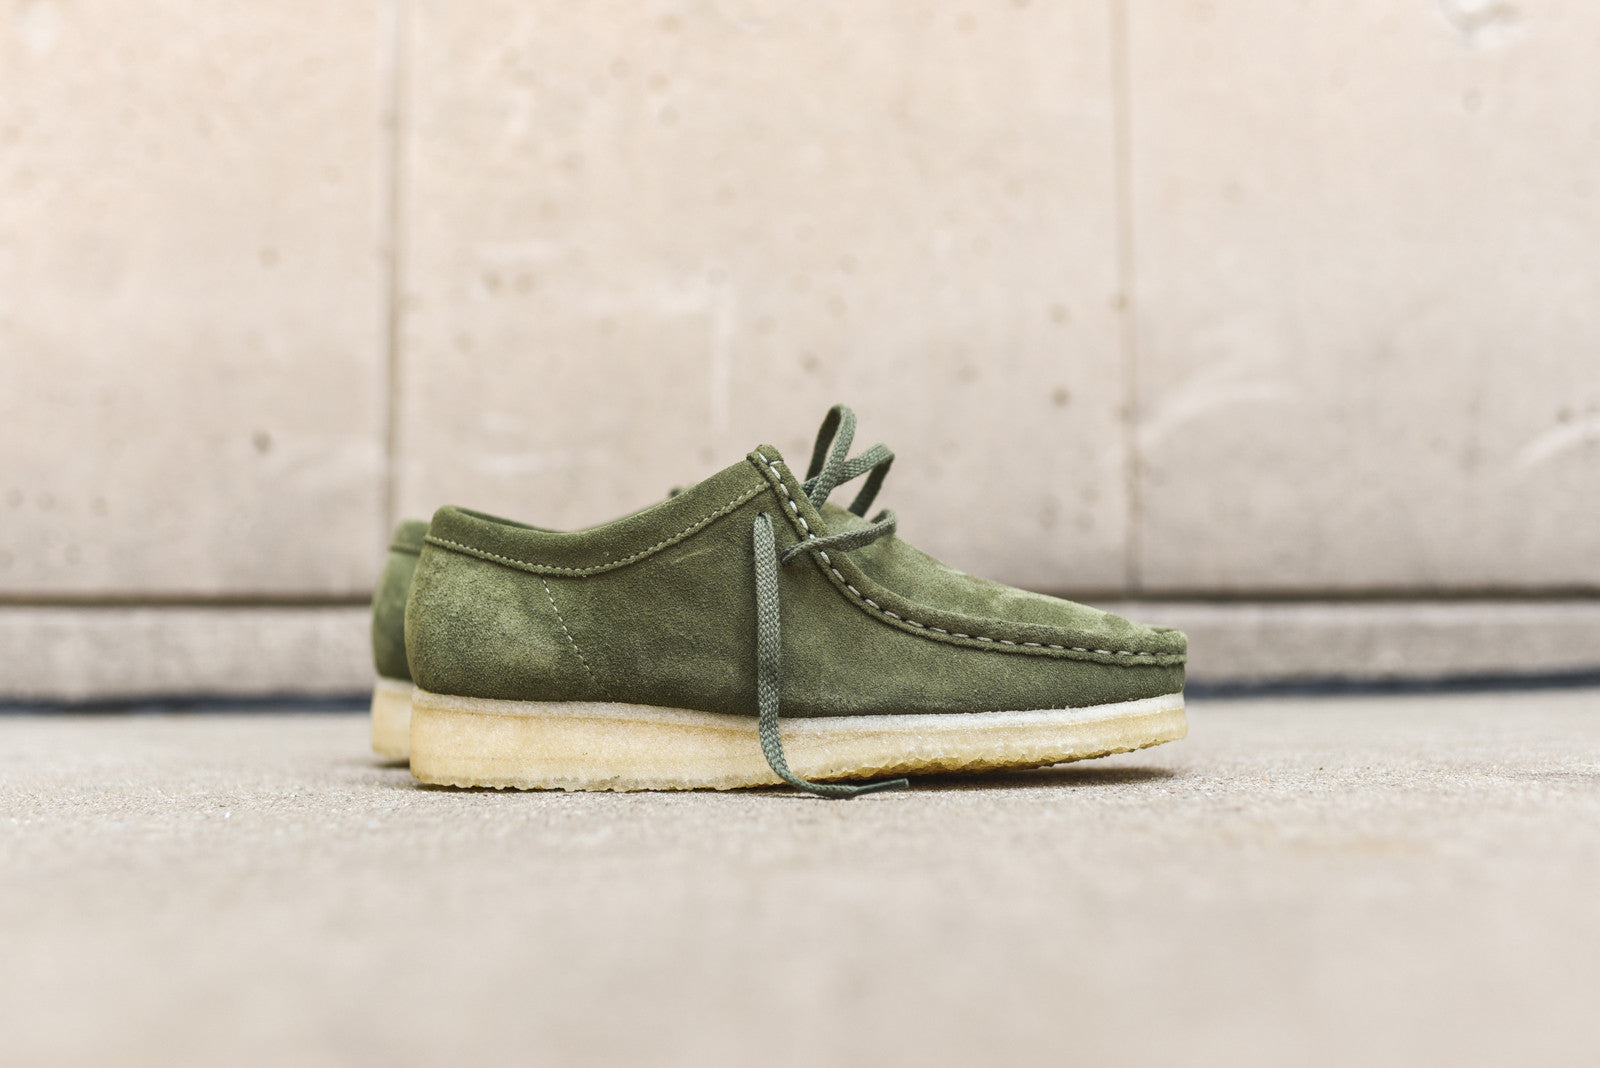 Clarks Wallabee Low - Leaf Green